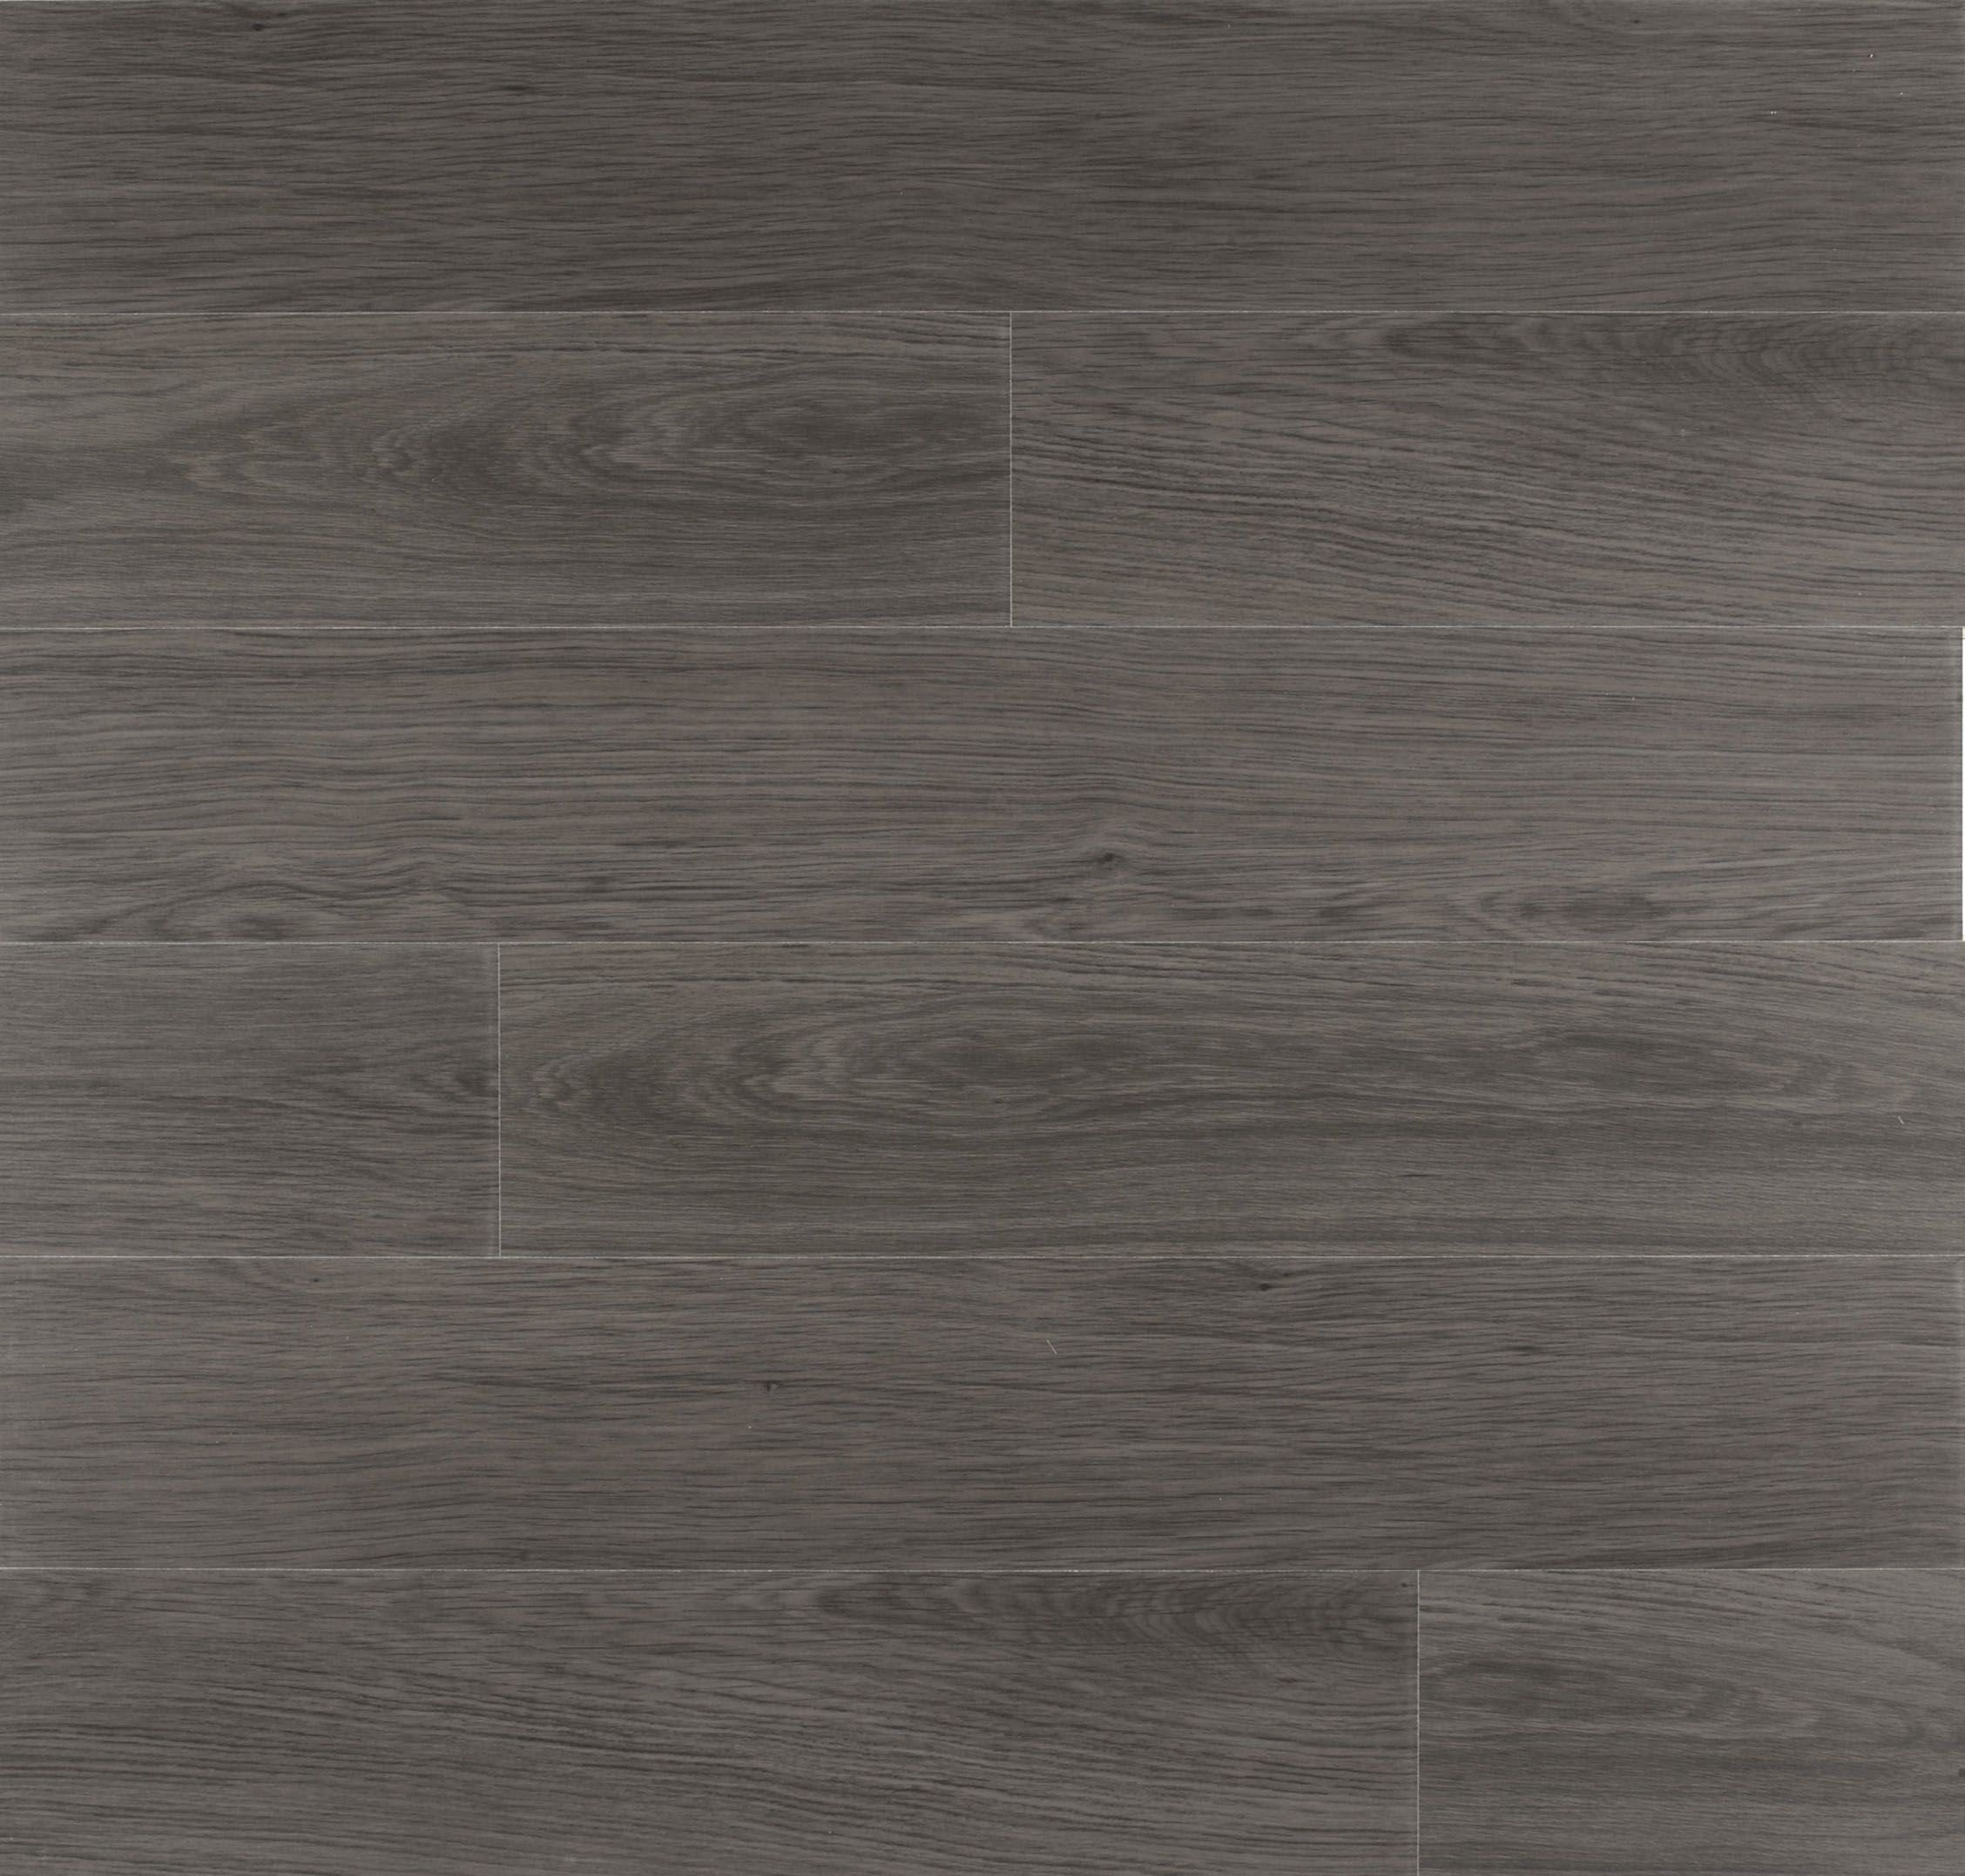 dark wood floors with hint of grey must have these one day in my dream house wow - Dark Wood Flooring